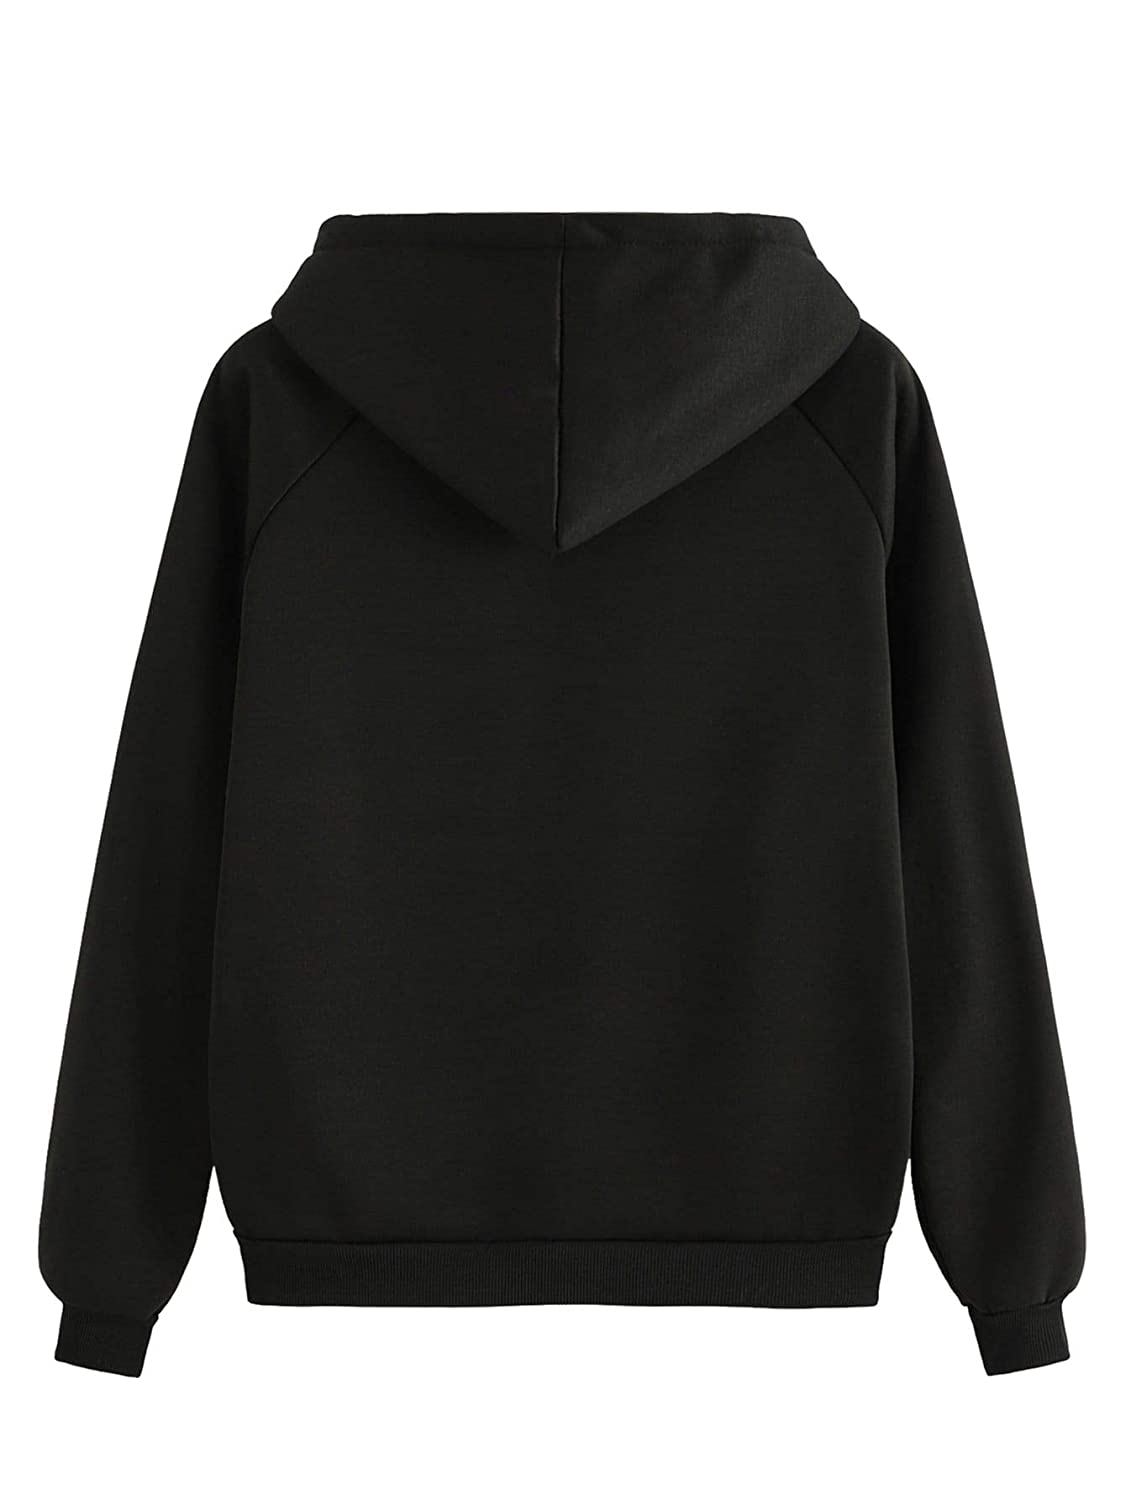 SOLY HUX Womens Solid Hooded Drawstring Zip Up Long Sleeve Casual Basic Sweatshirt Jacket